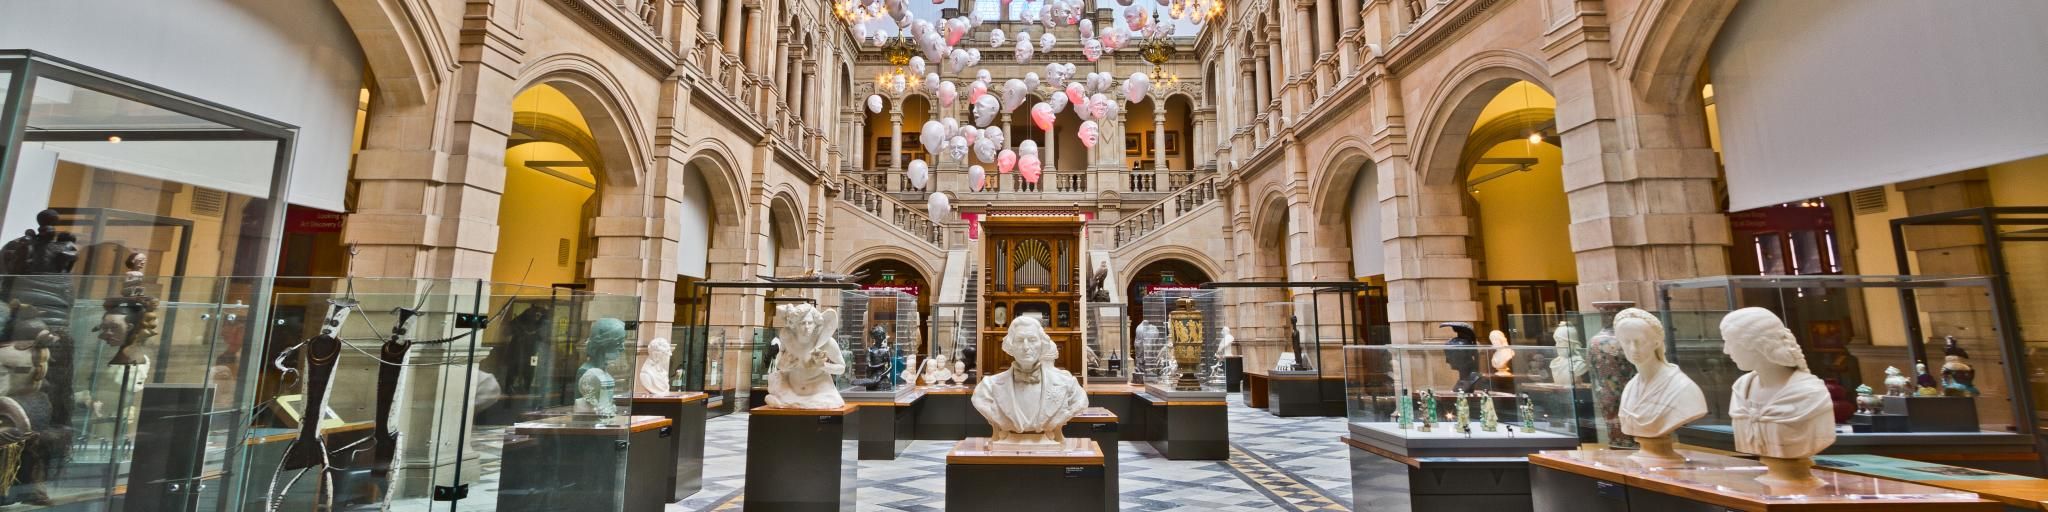 Busts and works of art on display in the immense and beautiful hall at Kelvingrove Art Gallery